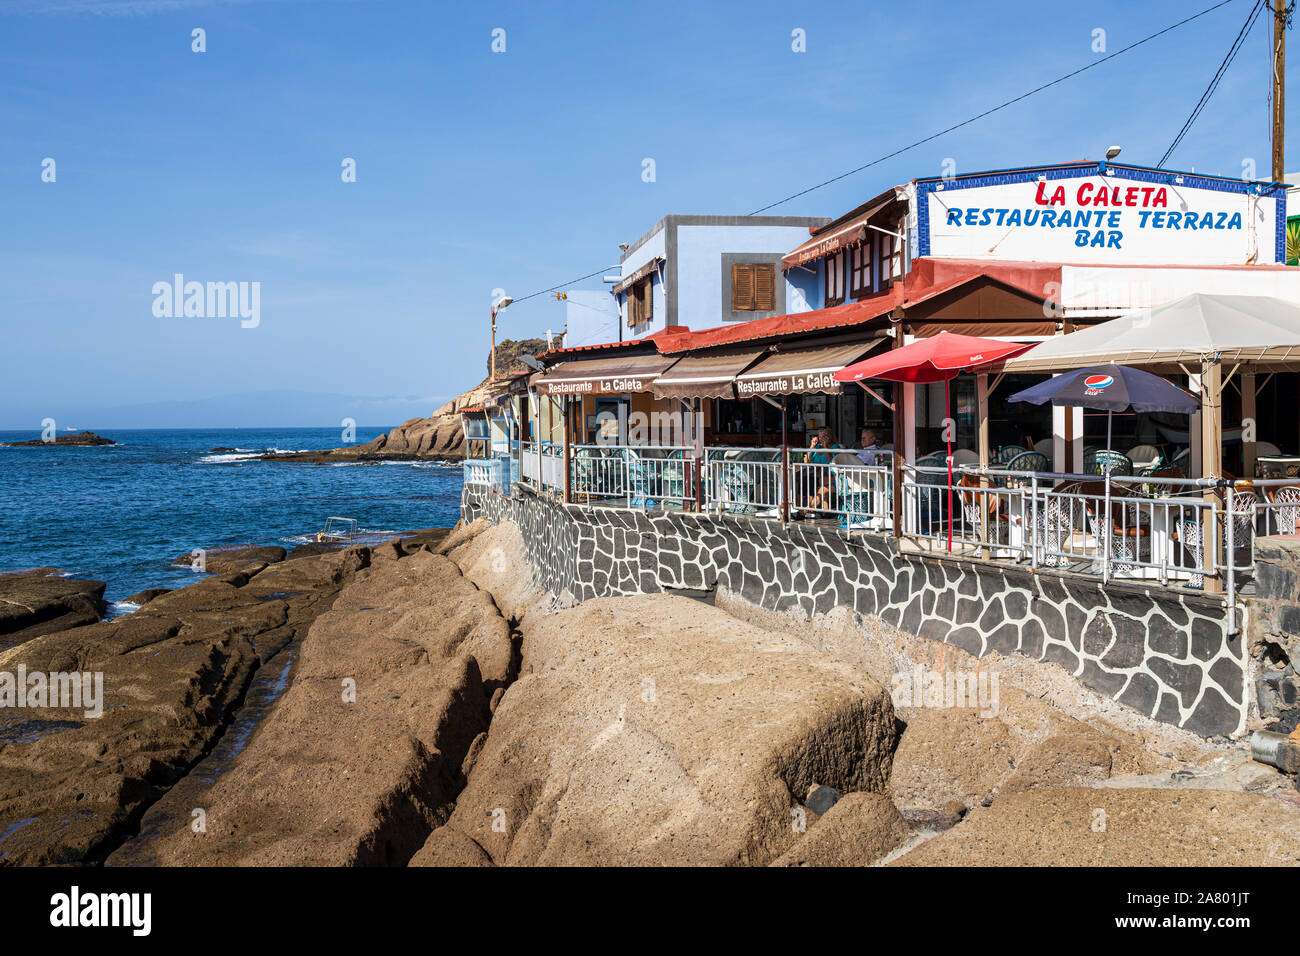 Restaurant, Terrace Bar, Cafe on the seafront in the early morning at La Caleta, Costa Adeje, Tenerife, Canary Islands, Spain Stock Photo